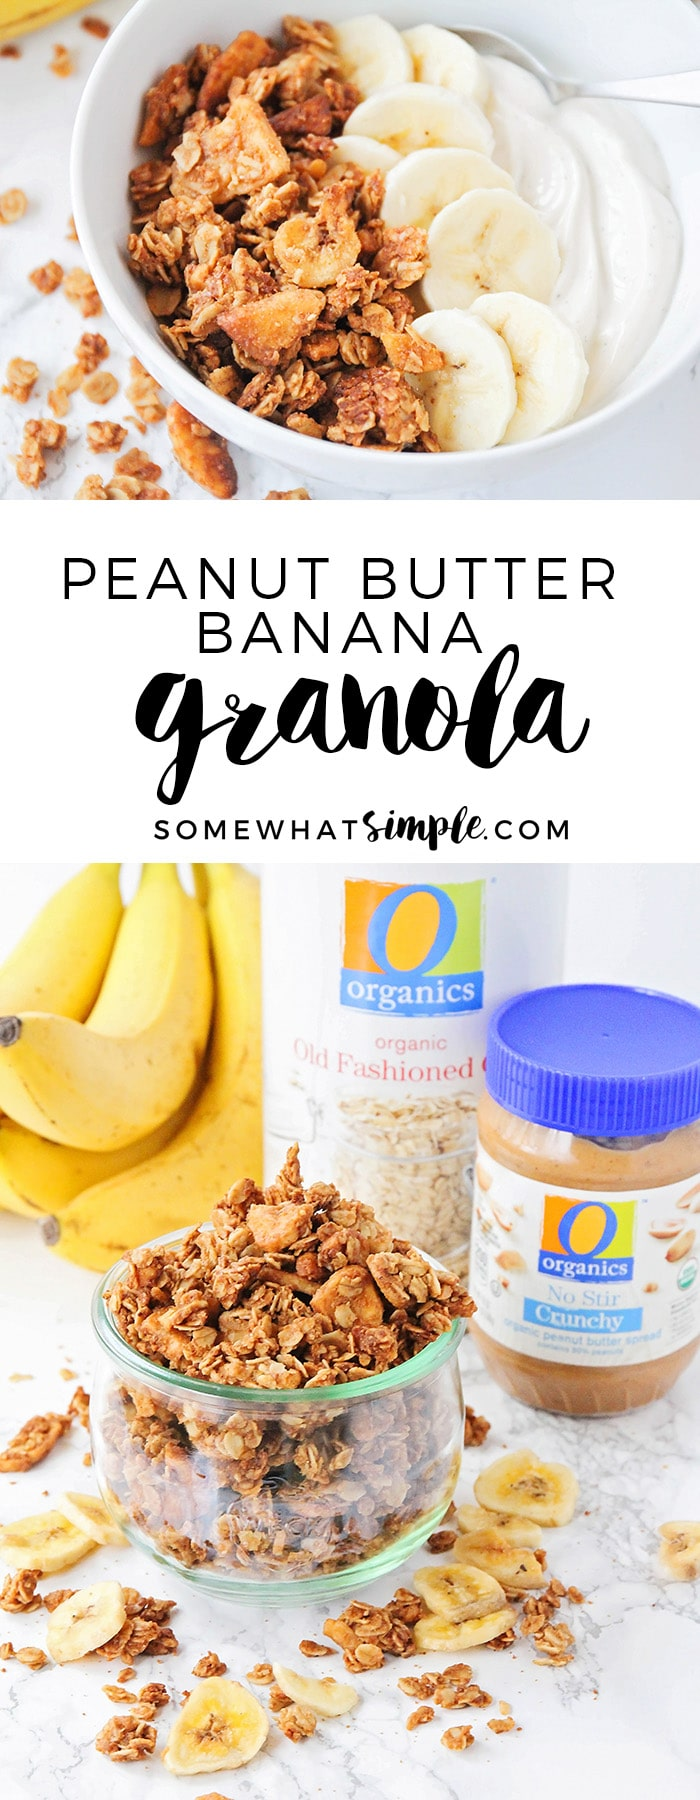 This homemade peanut butter banana granola is so delicious, and healthy too! It's perfect for a quick snack or a tasty breakfast! via @somewhatsimple